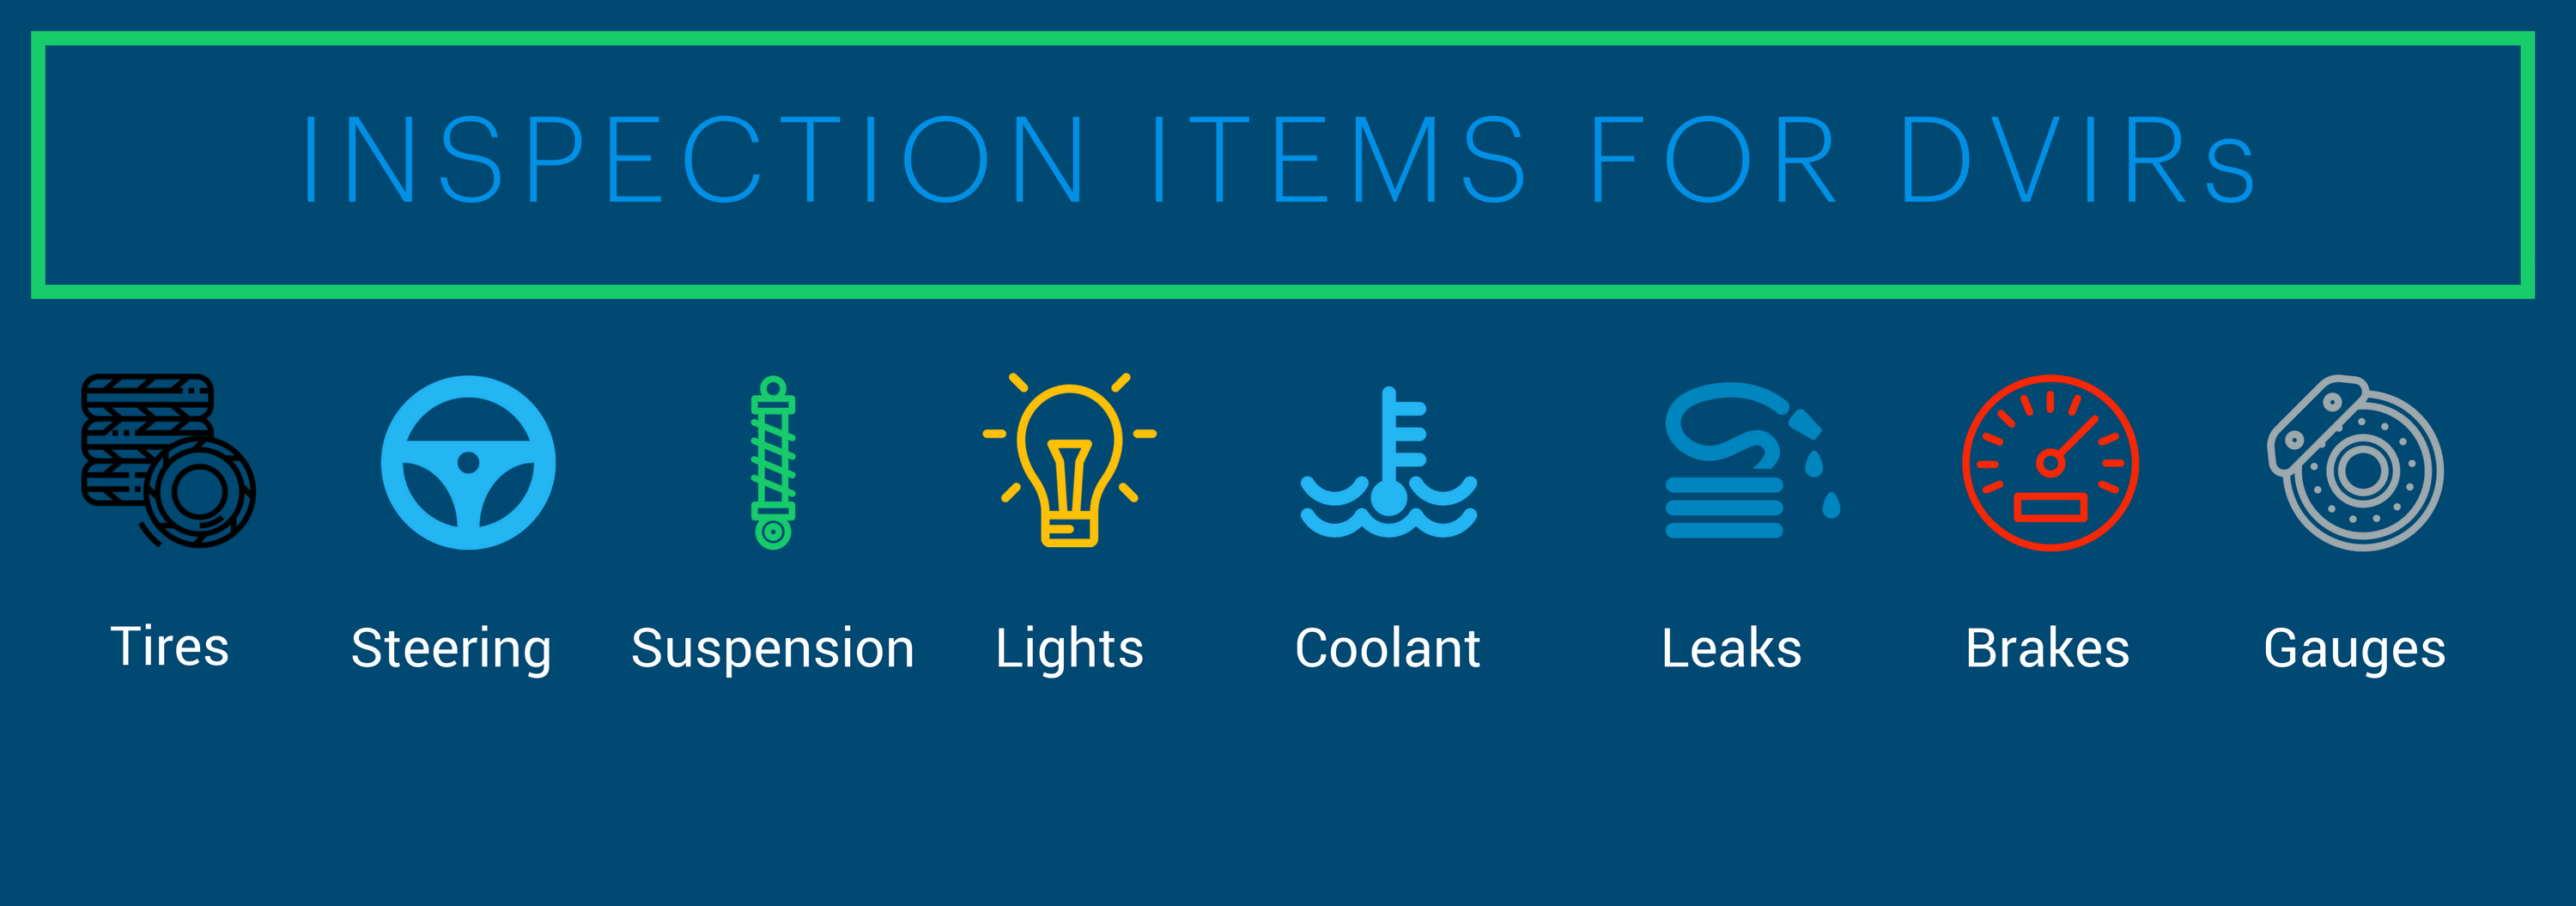 inspection-items-infographic